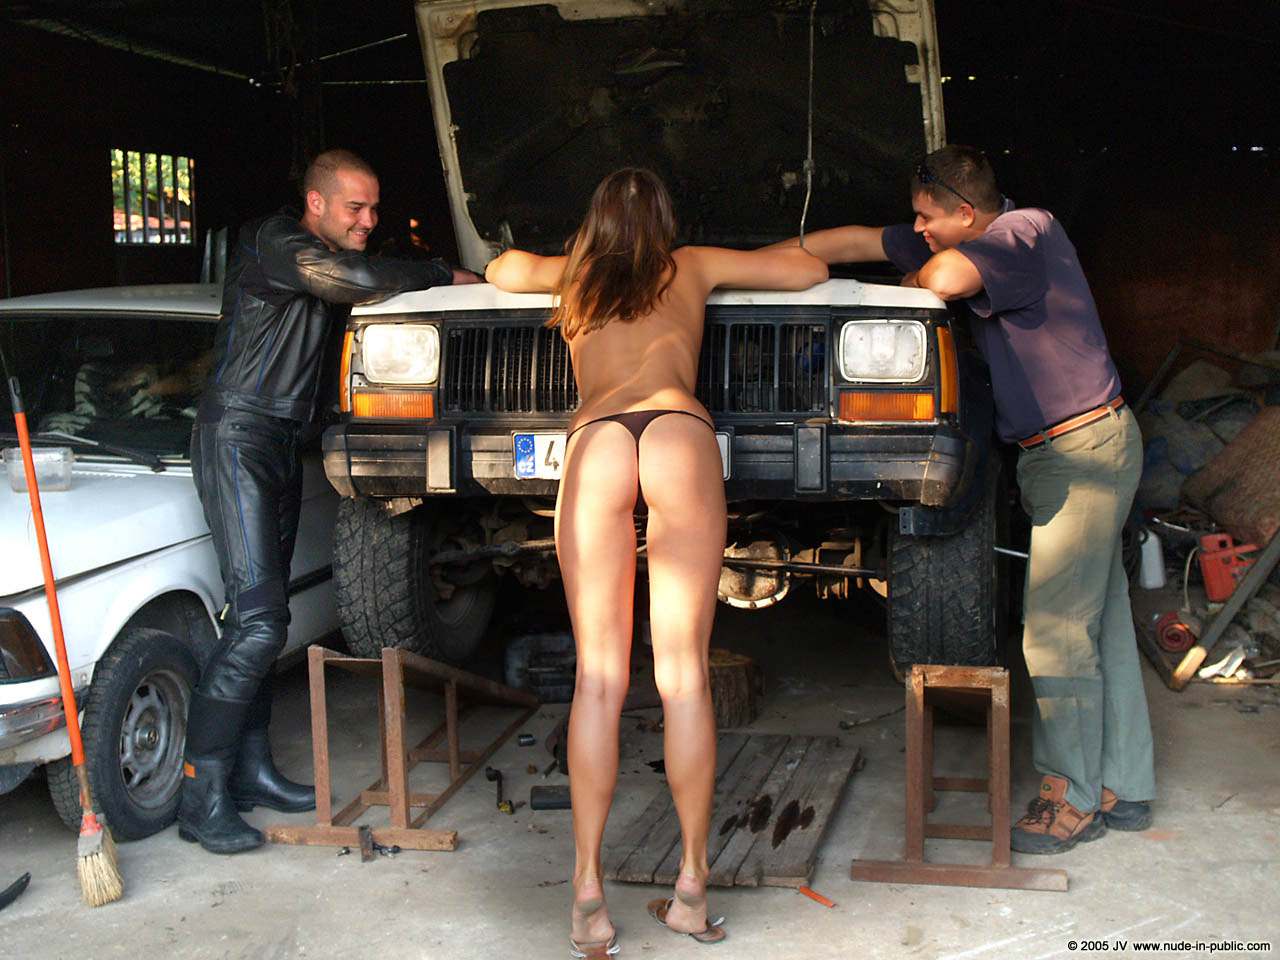 veronika-e-junkyard-cars-mechanic-nude-in-public-07